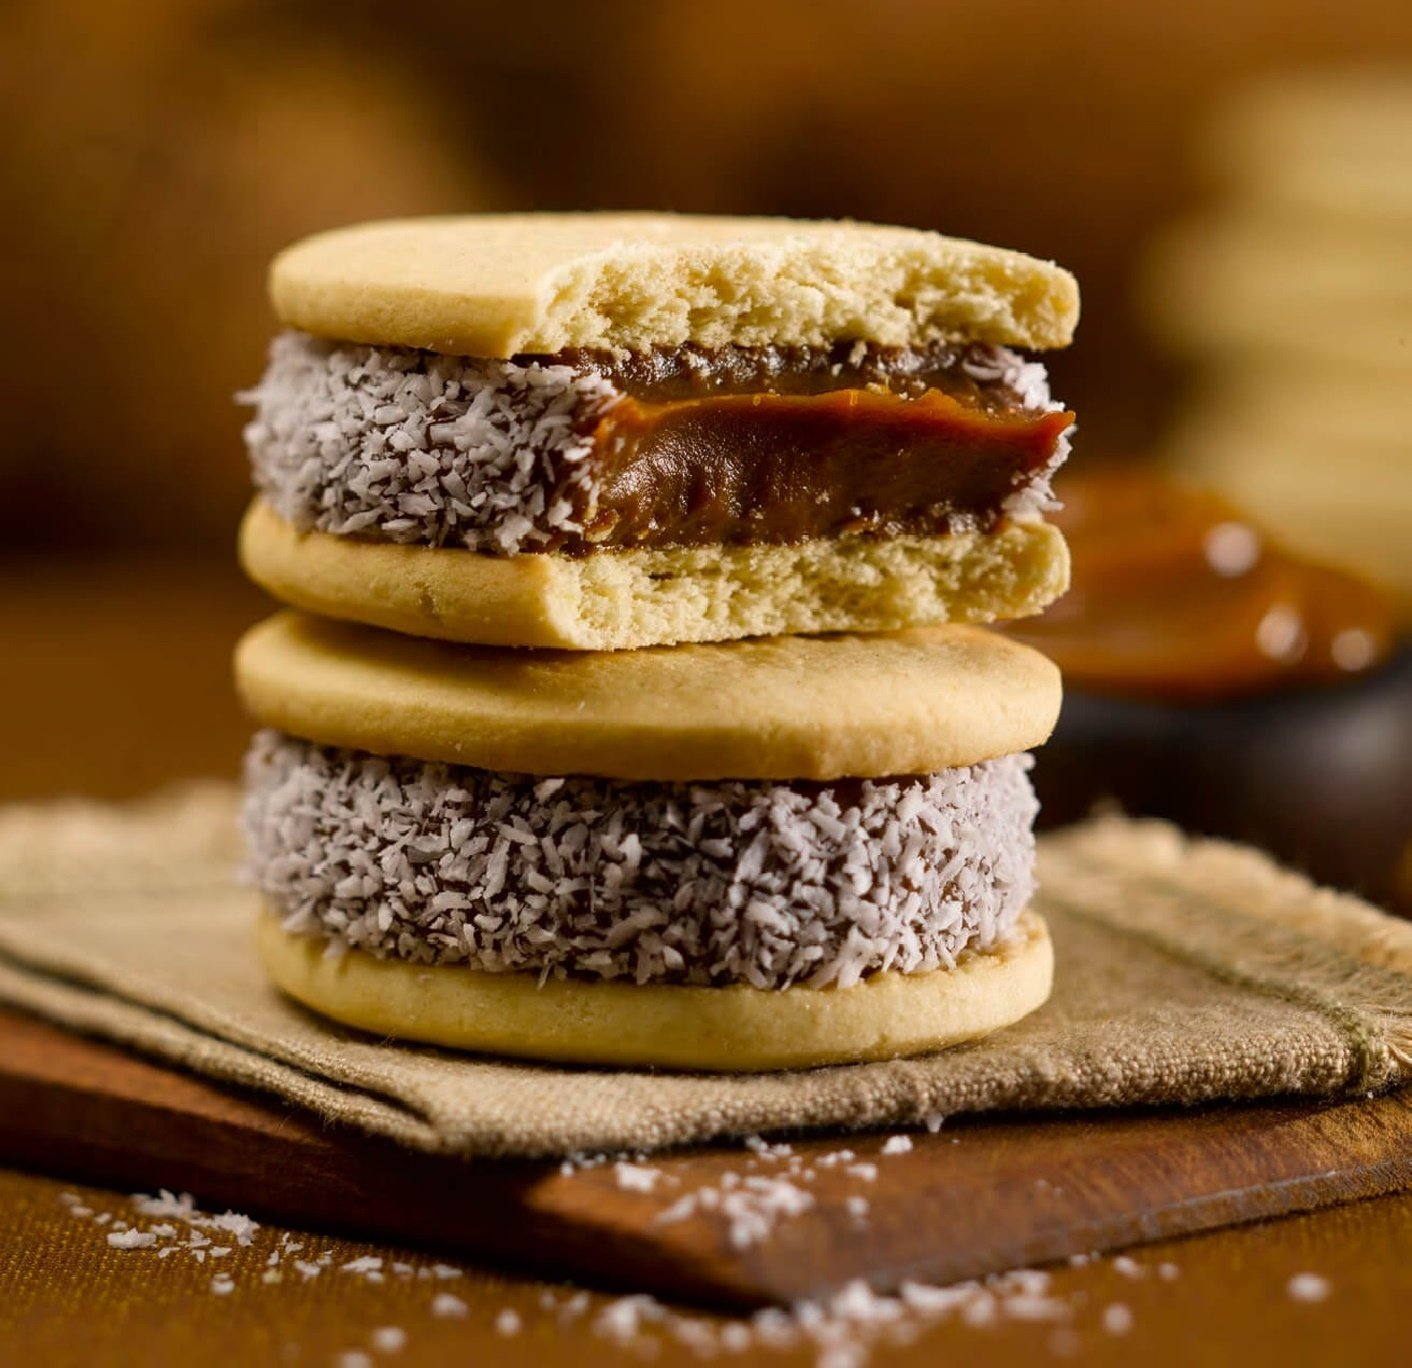 Cachafaz Alfajor Maizena - Cornstarch Sandwich Cookie filled with dulce de leche decorated with shredded coconut